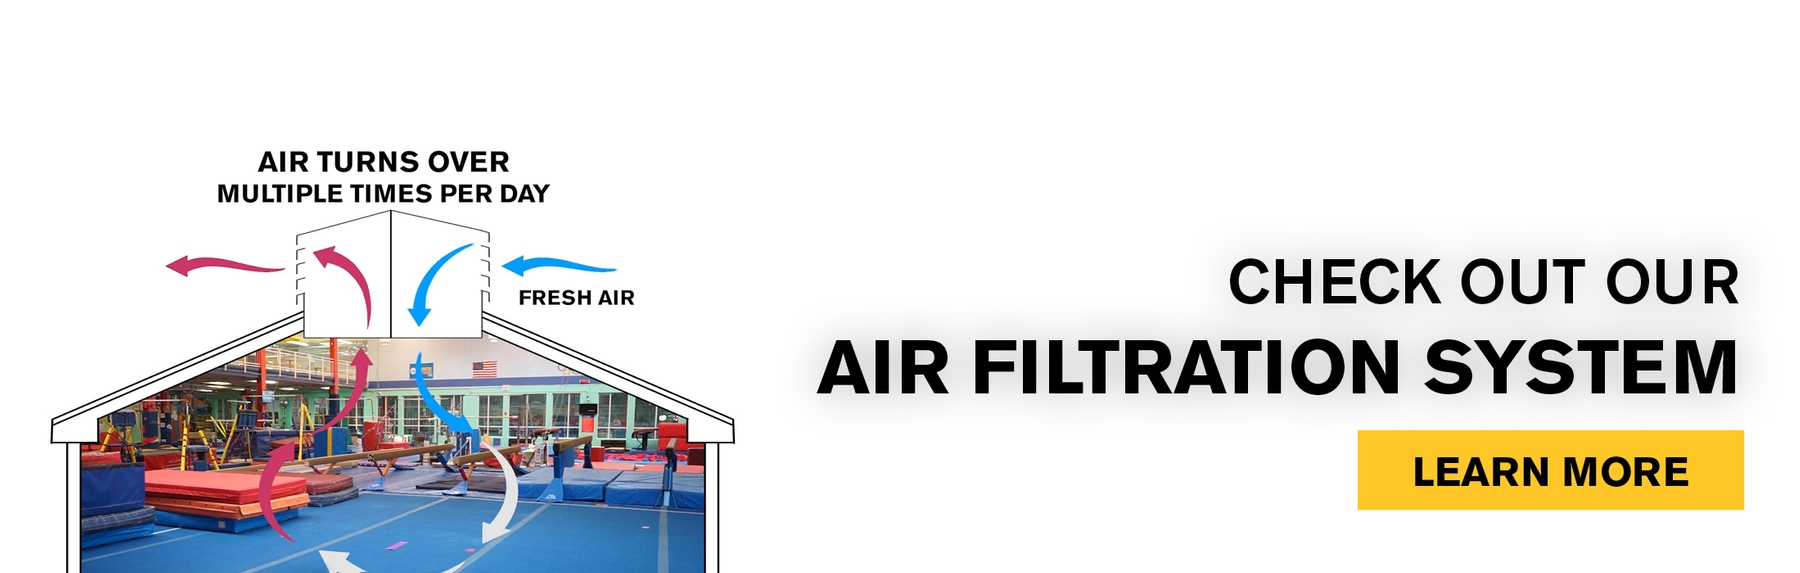 CHECK OUT OUR AIR FILTRATION SYSTEM